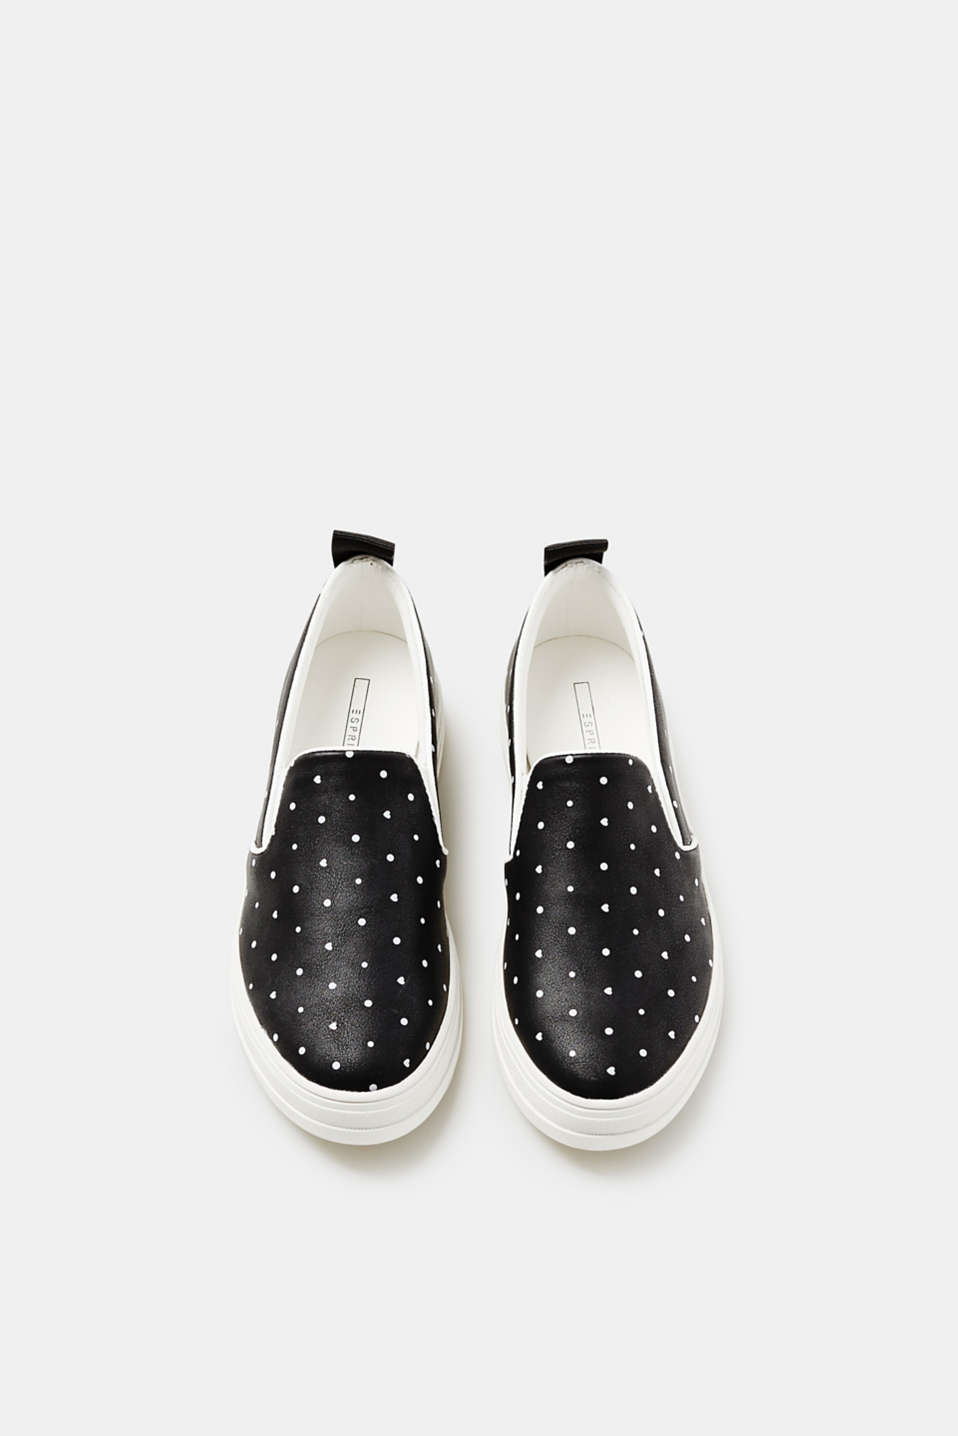 Slip-on trainers with a minimalist print